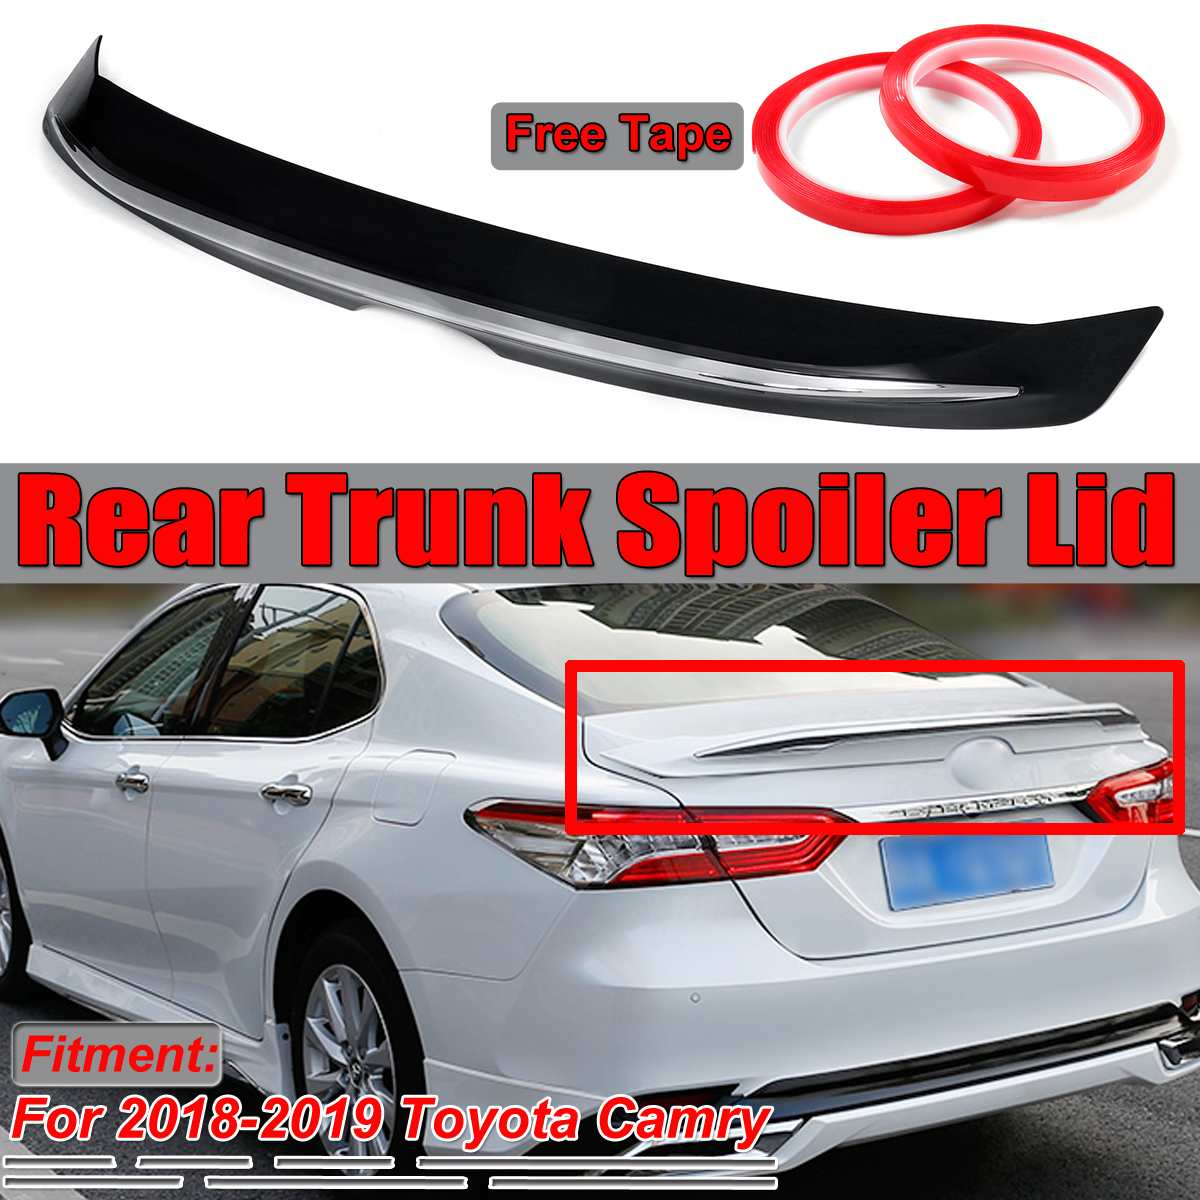 Wiring Harness Toyota Camry Spoiler - Wiring Diagram cute-thank -  cute-thank.erbapersa.iterbapersa.it